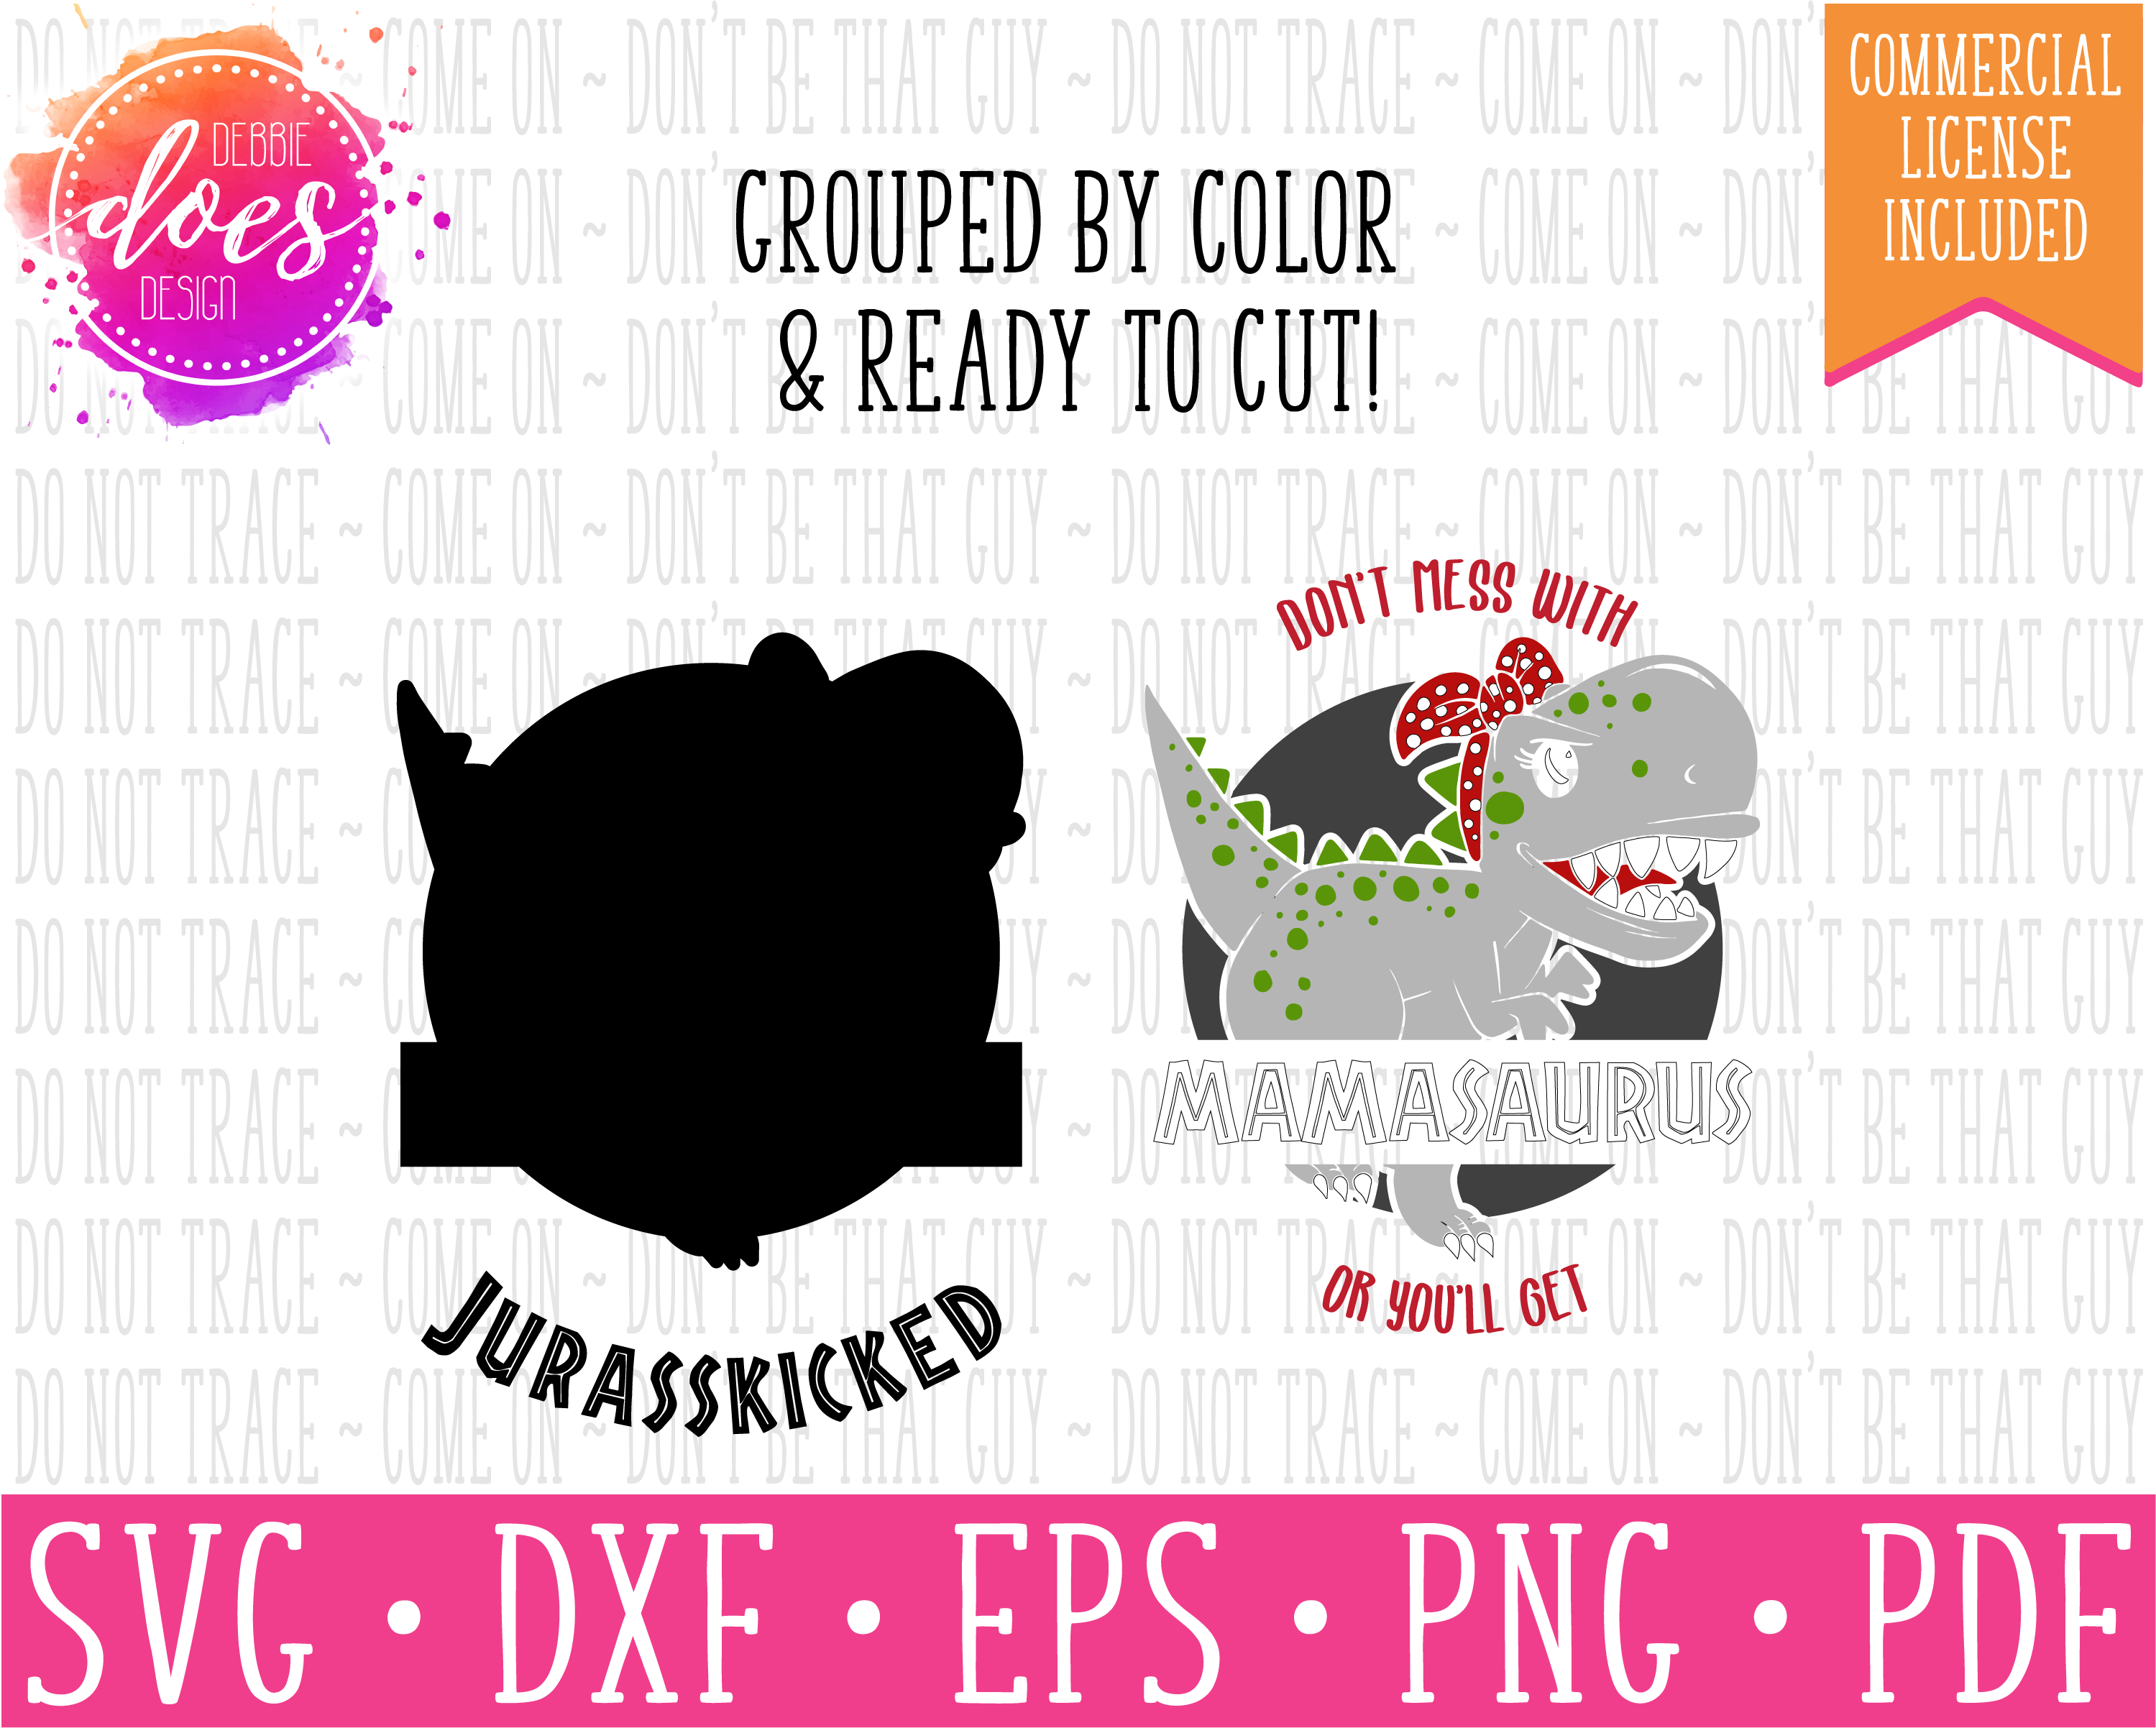 Don't Mess With Mamasaurus or You'll Get Jurasskicked - SVG example image 3